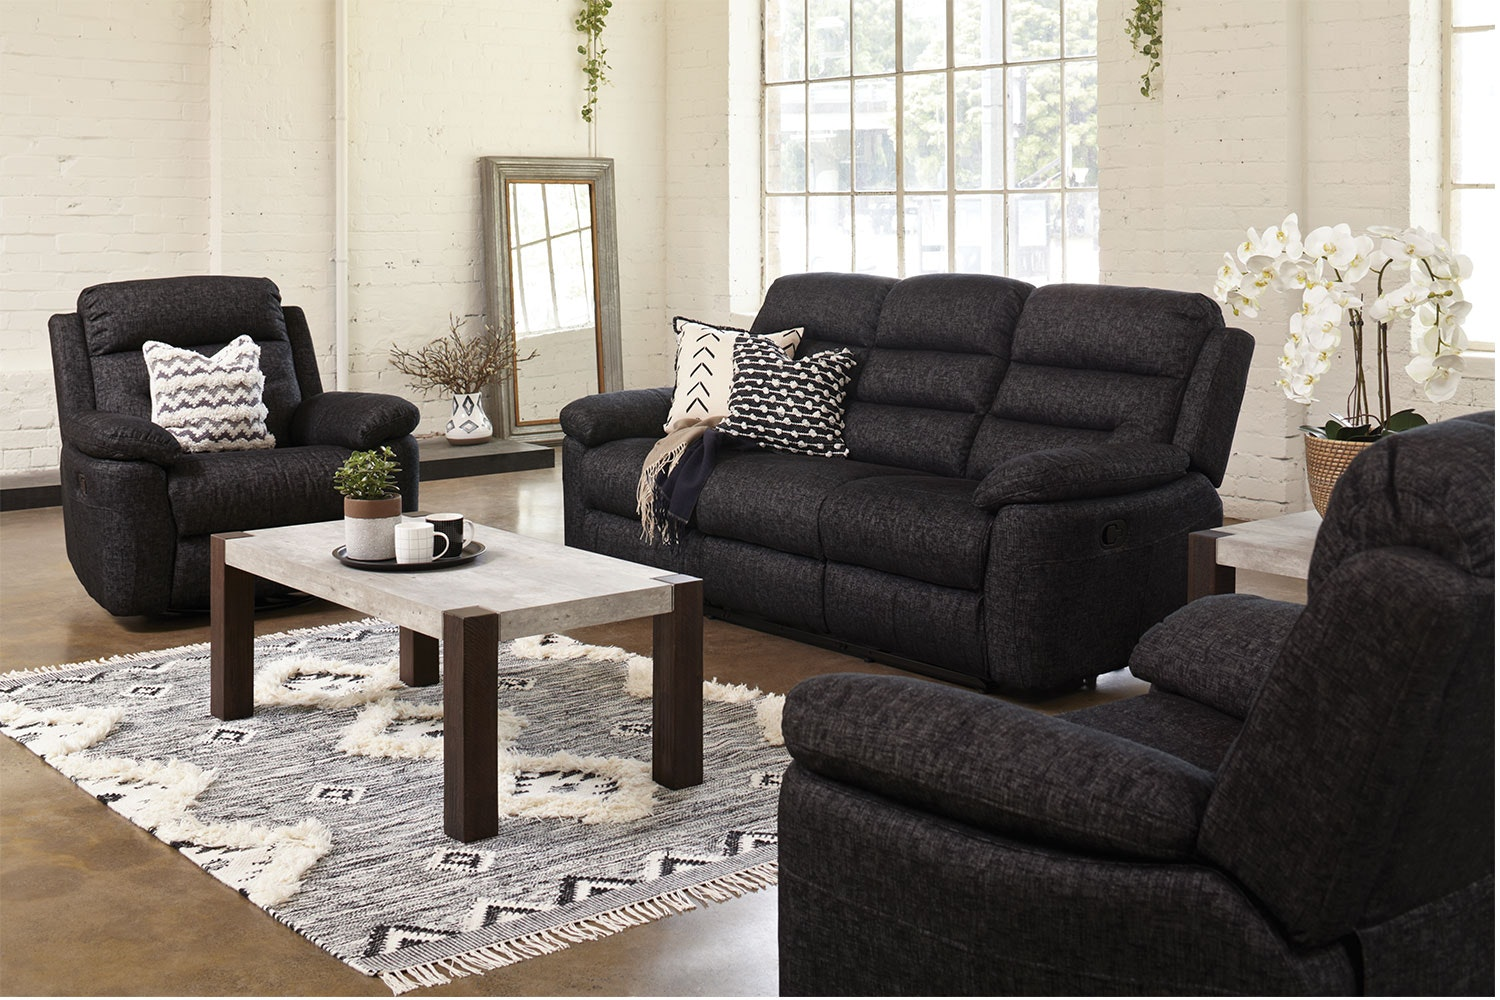 Maverick 3 Piece Fabric Recliner Lounge Suite